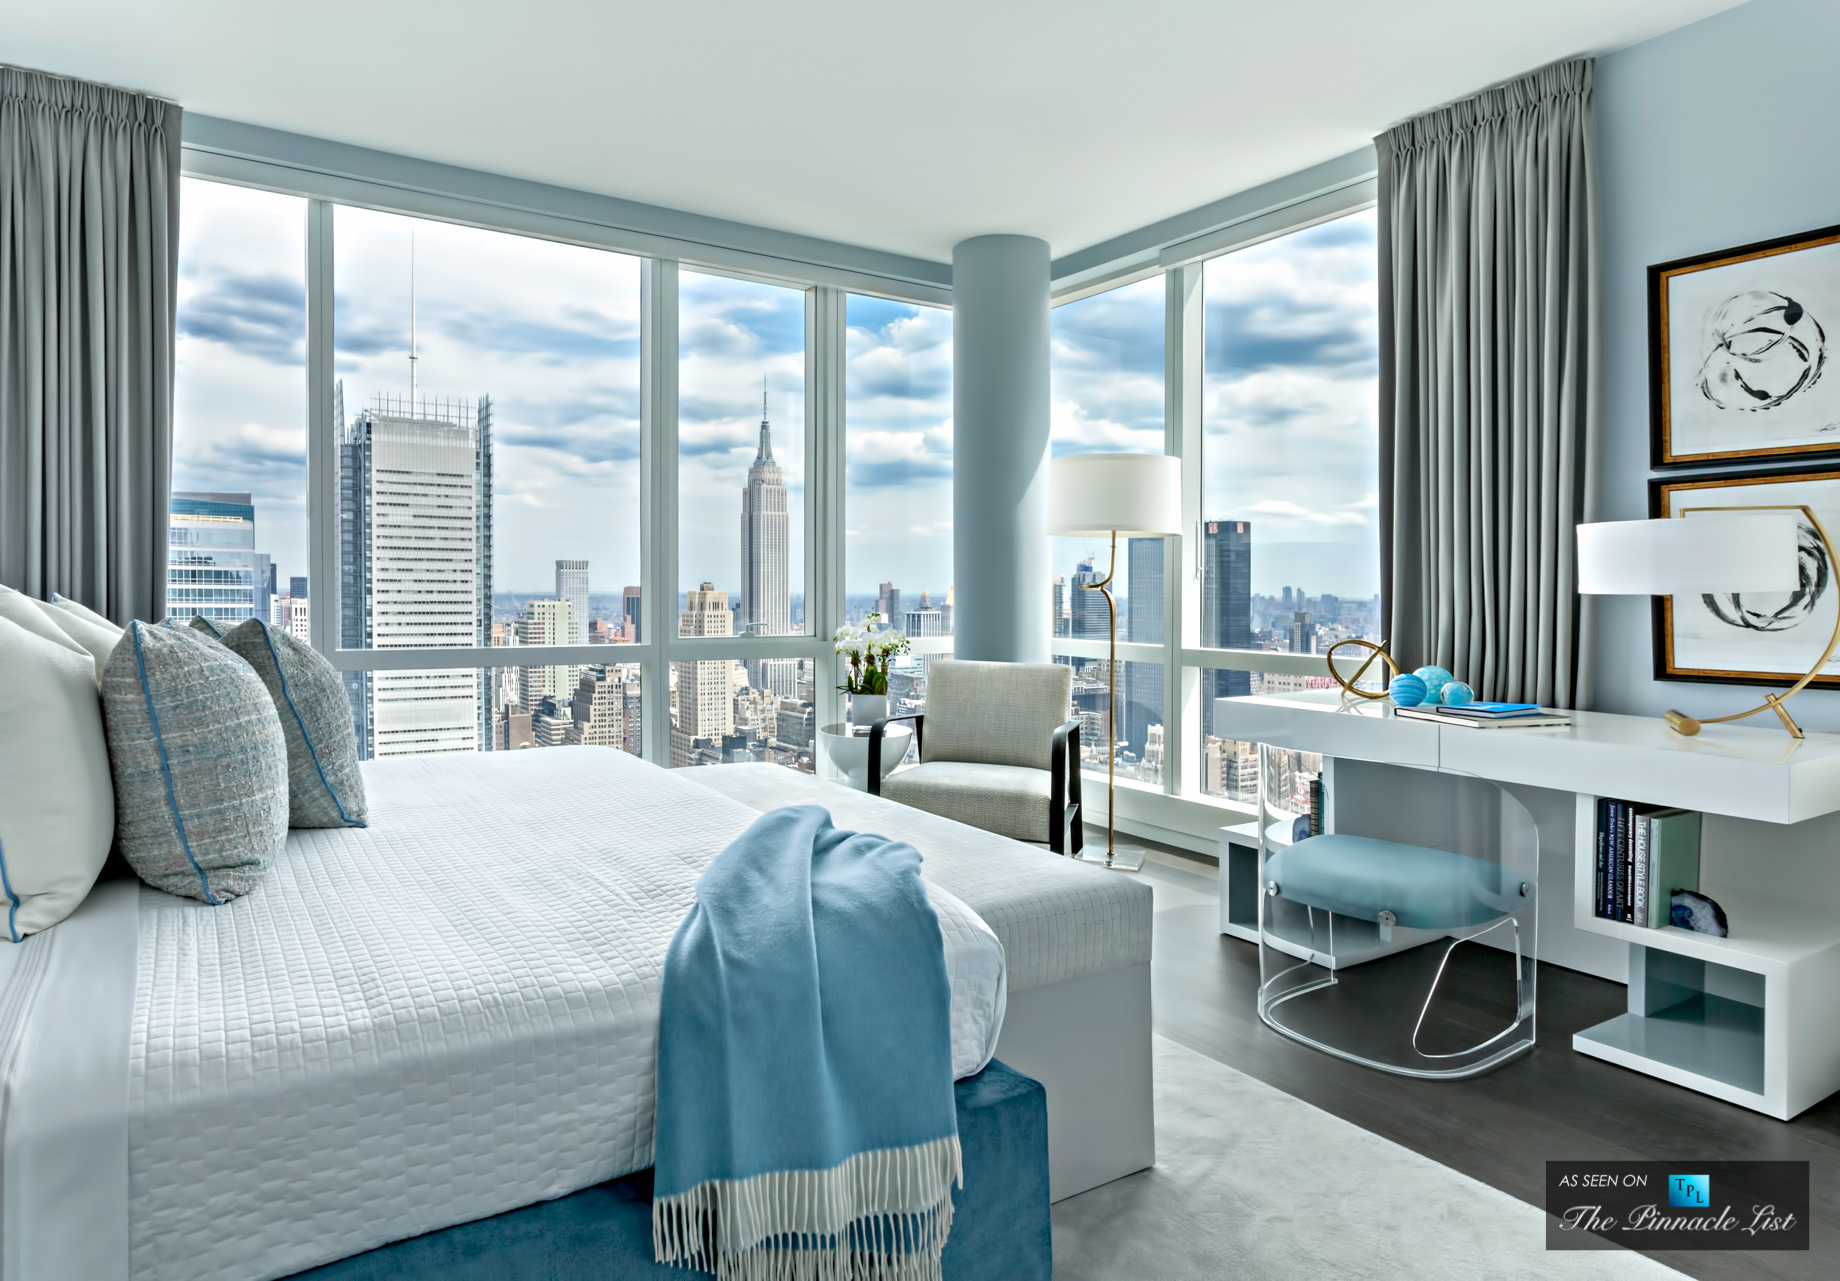 Manhattan View – Elevated NYC Living at Midtown's Hottest New Condo Development